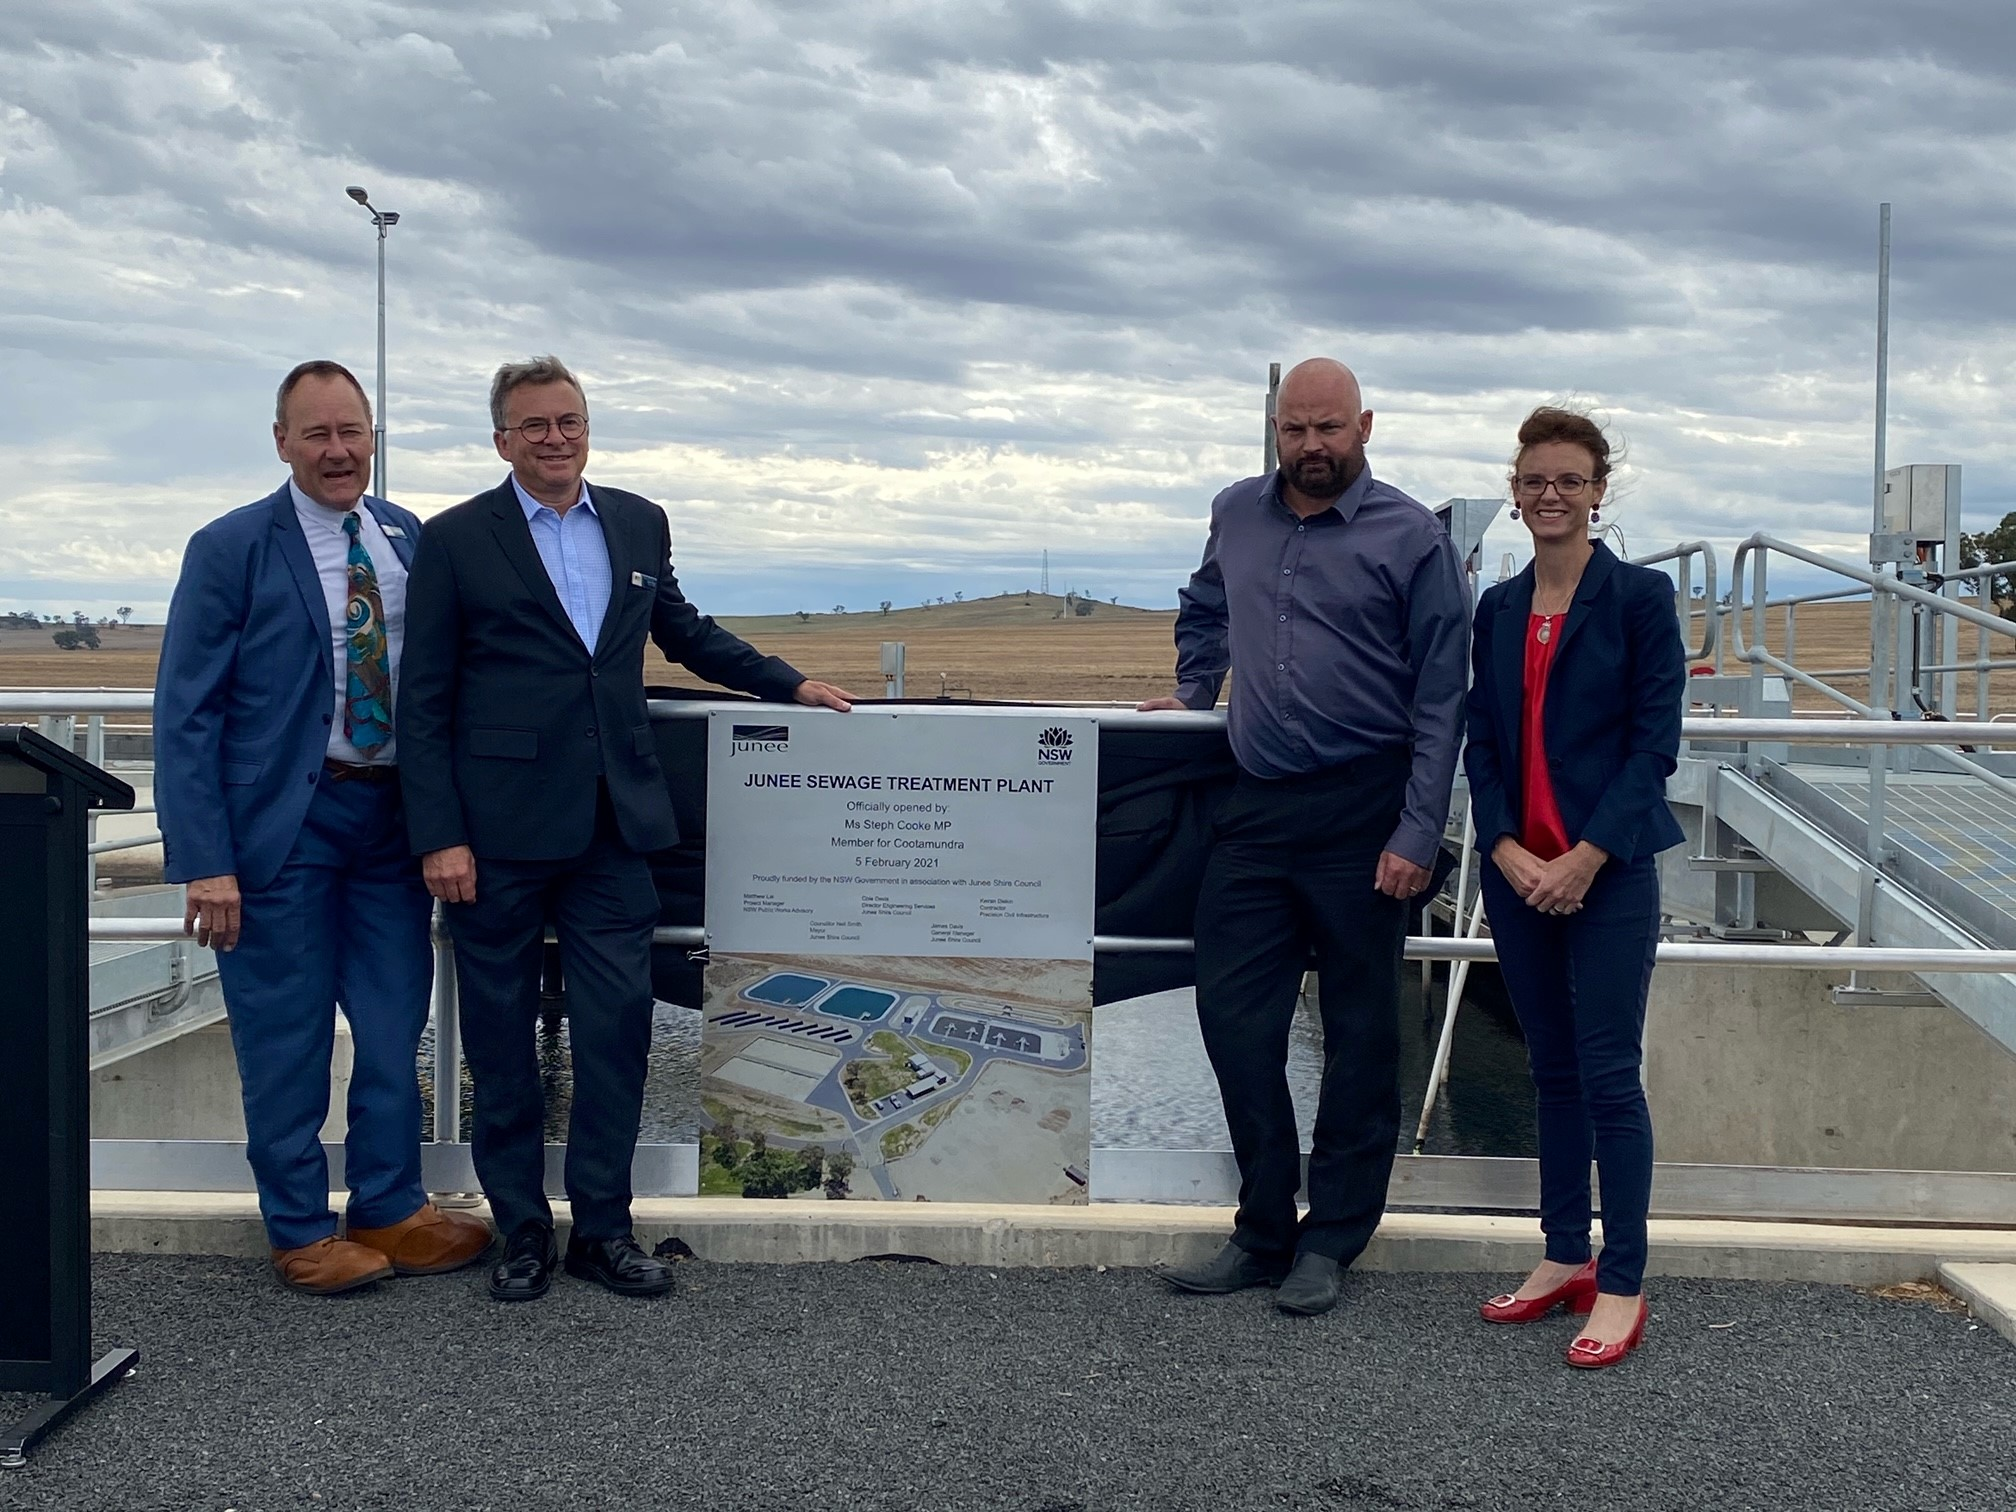 Cr Neil Smith, James Davis, Cole Davis and Steph Cooke MP stand next to a sign that reads 'Junee Sewerage Treatment Plant' and lean against a railing. Behind them is a pool of sewerage water.